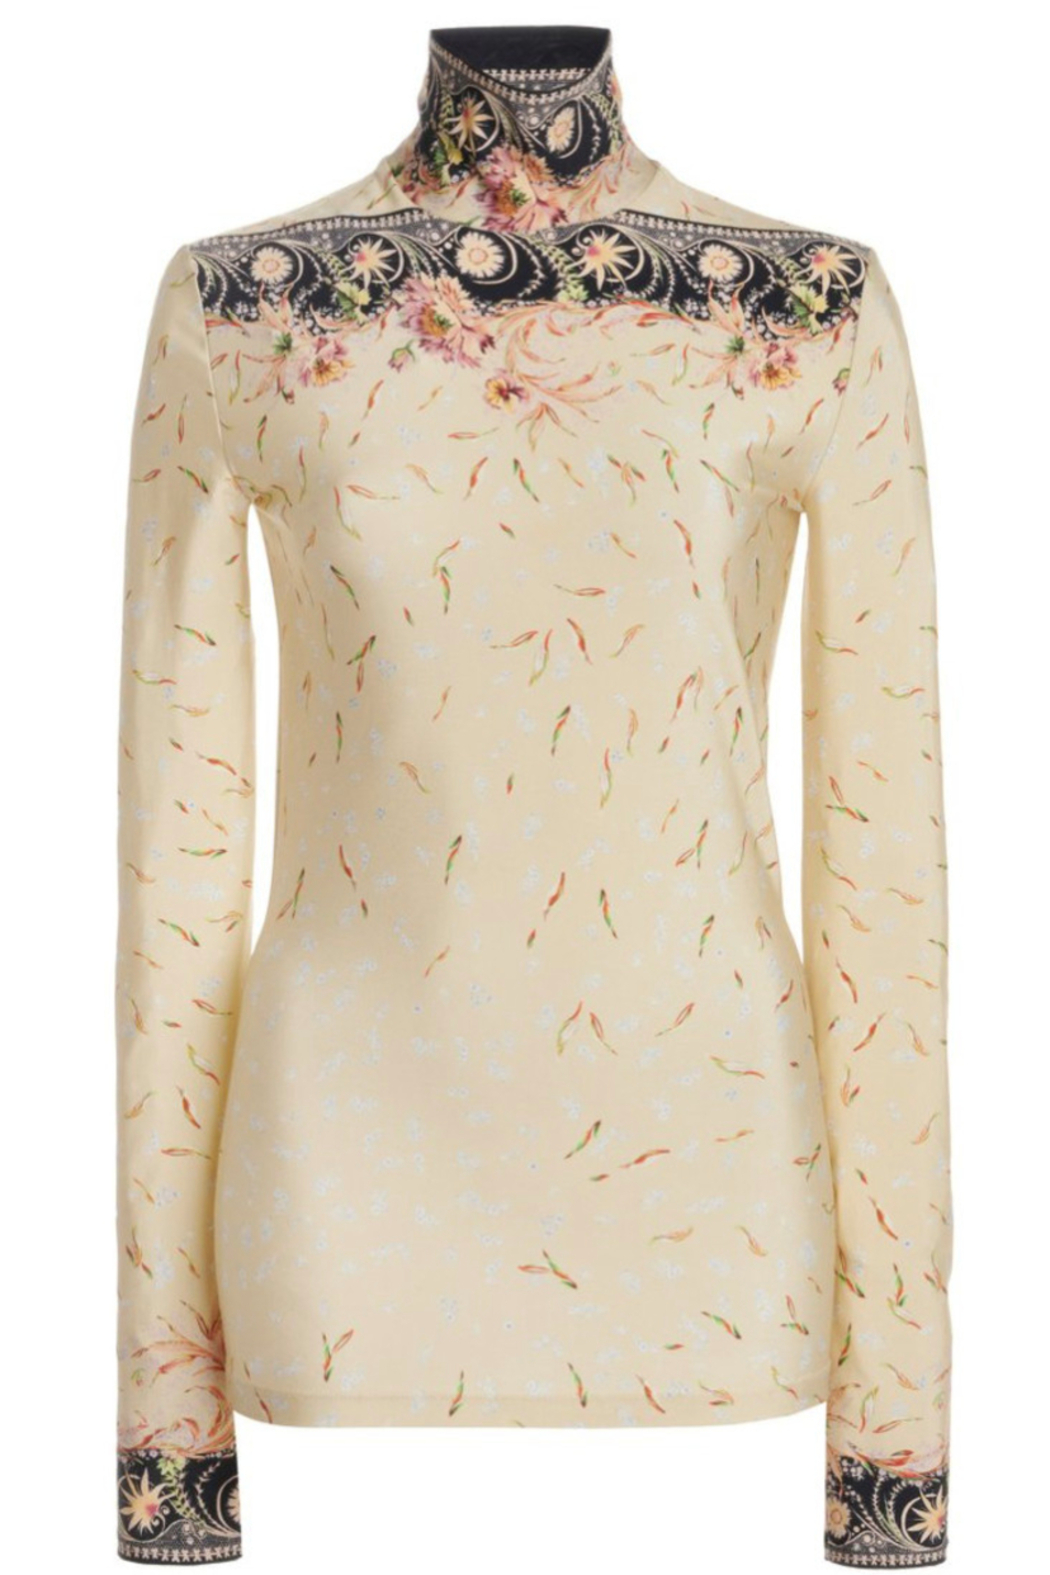 Paco Rabanne PRINTED TURTLENECK - Front Full Image